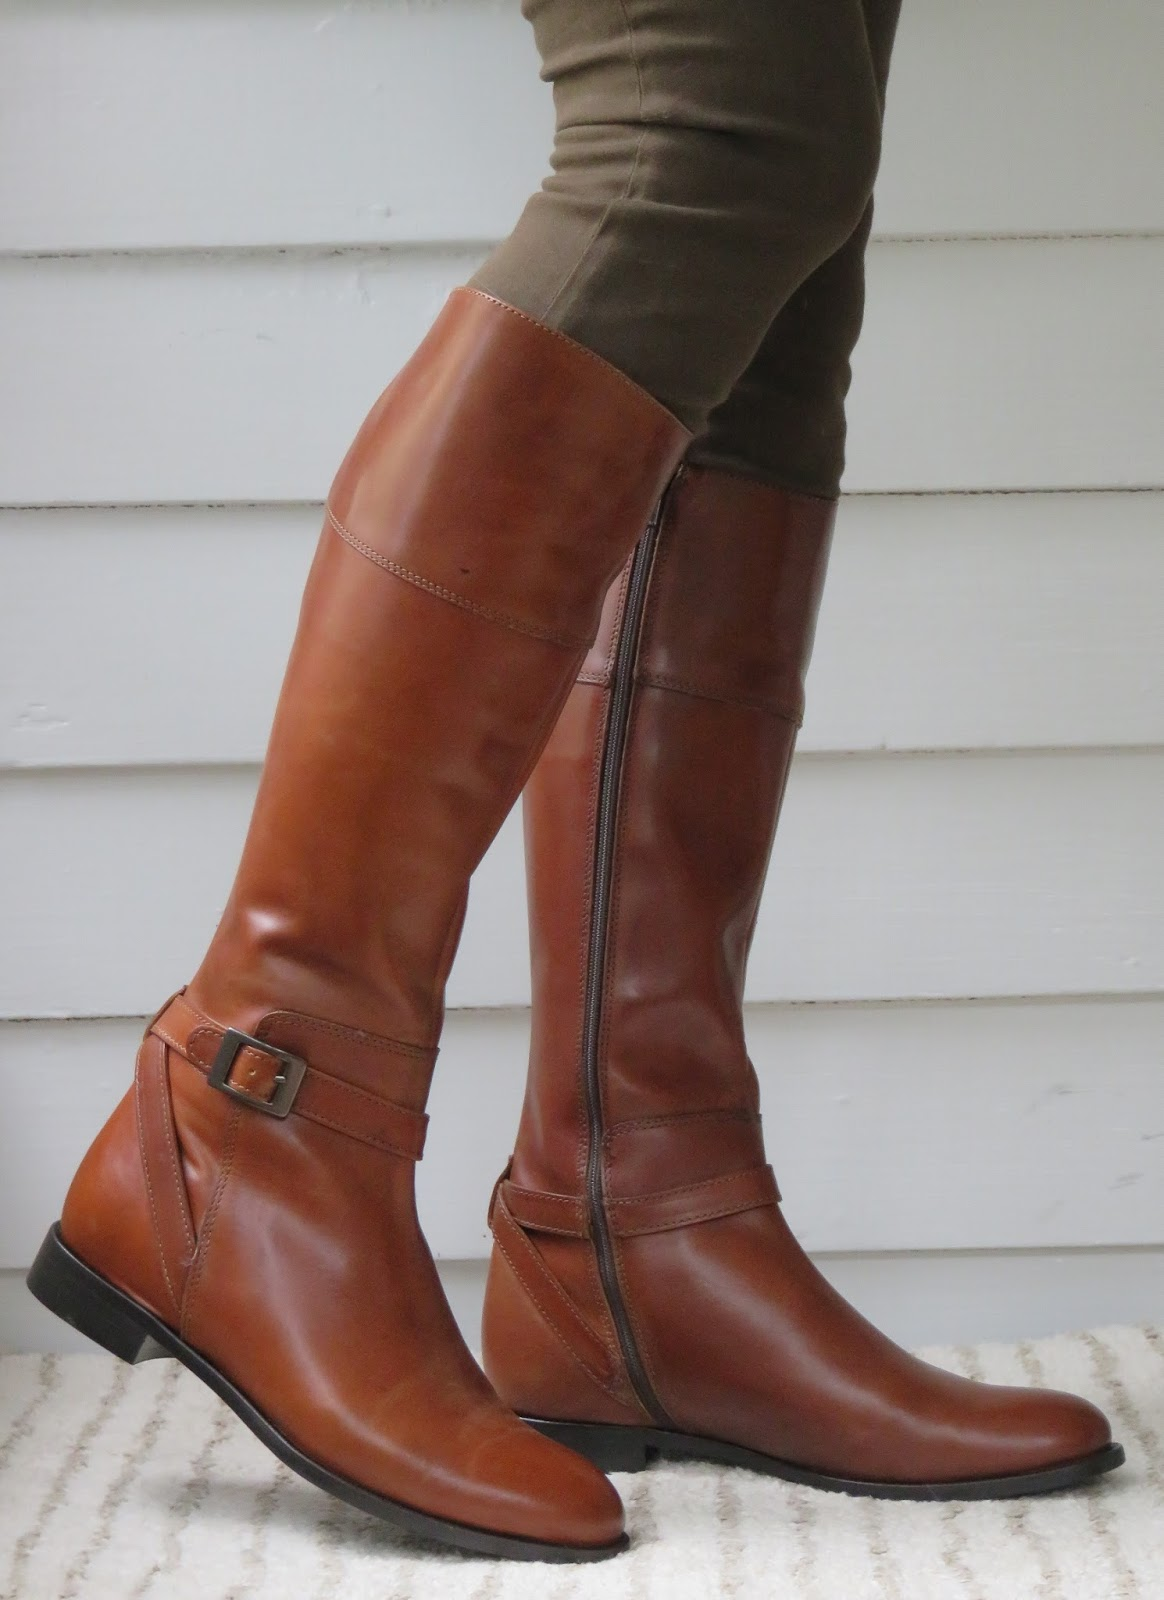 Howdy Slim! Riding Boots for Thin Calves: Narrow Calf Riding Boots ...